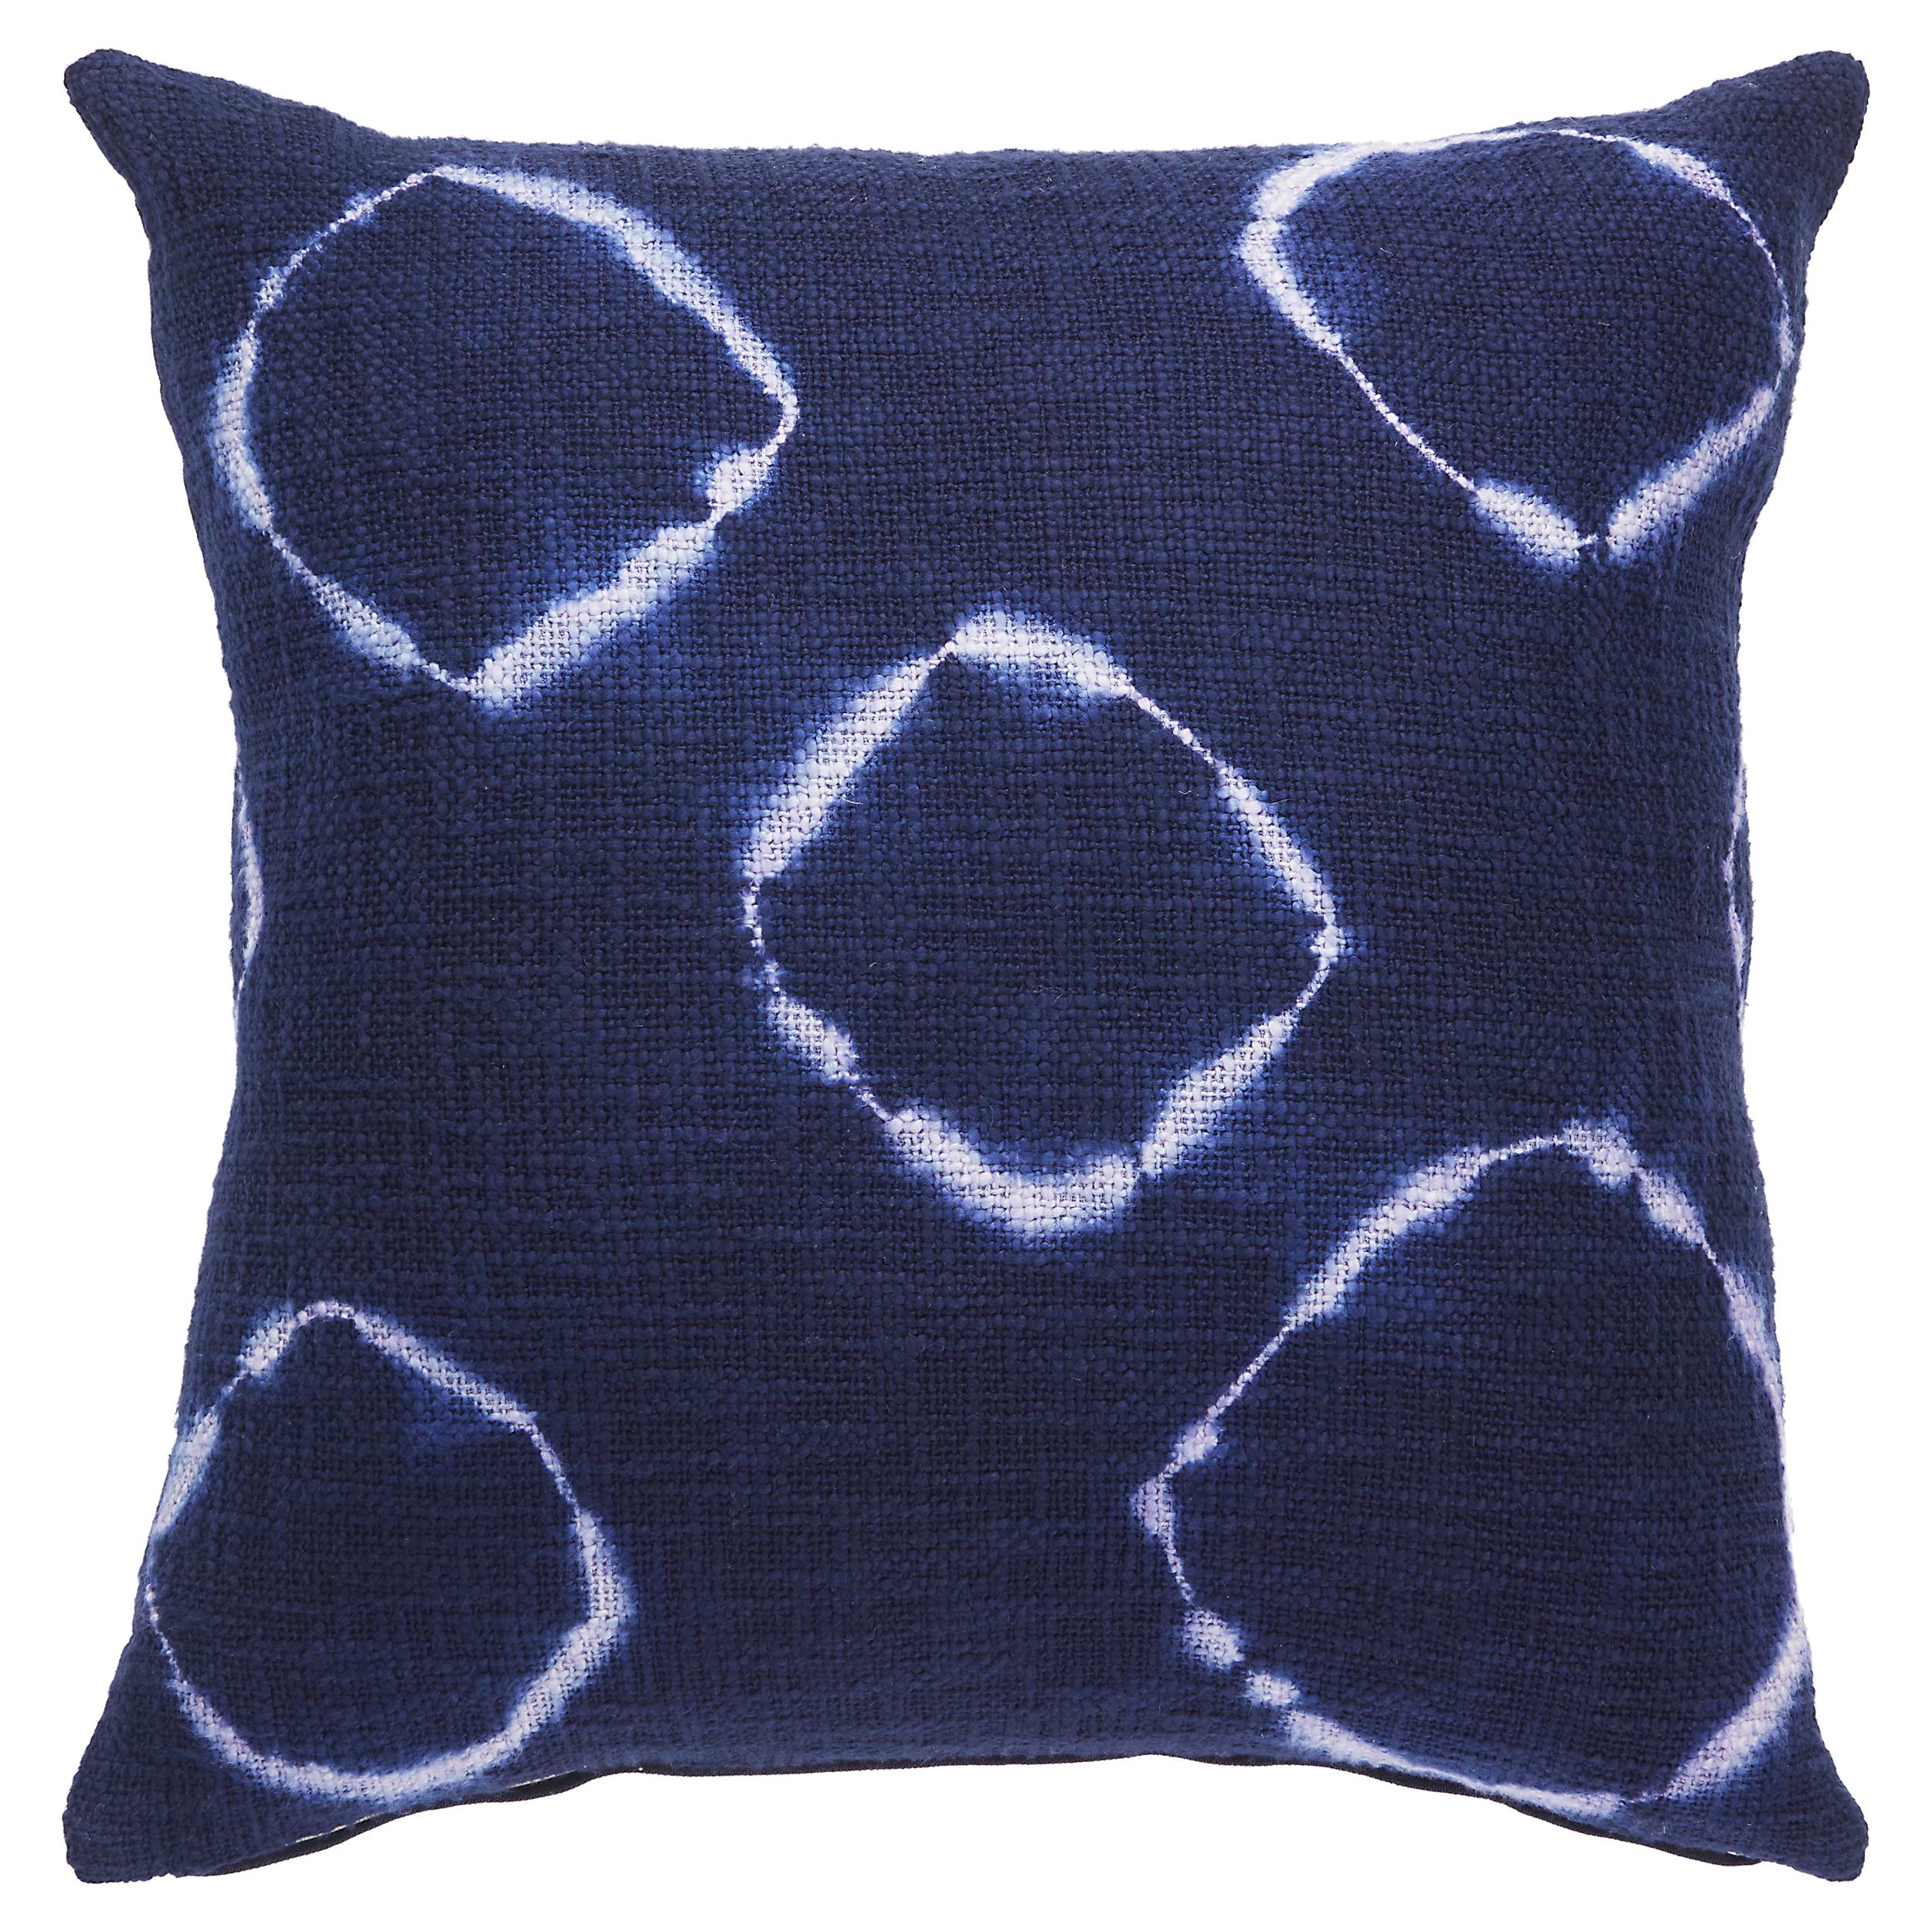 Global Ink Blue Overdyed Cotton Pillow - 20x20